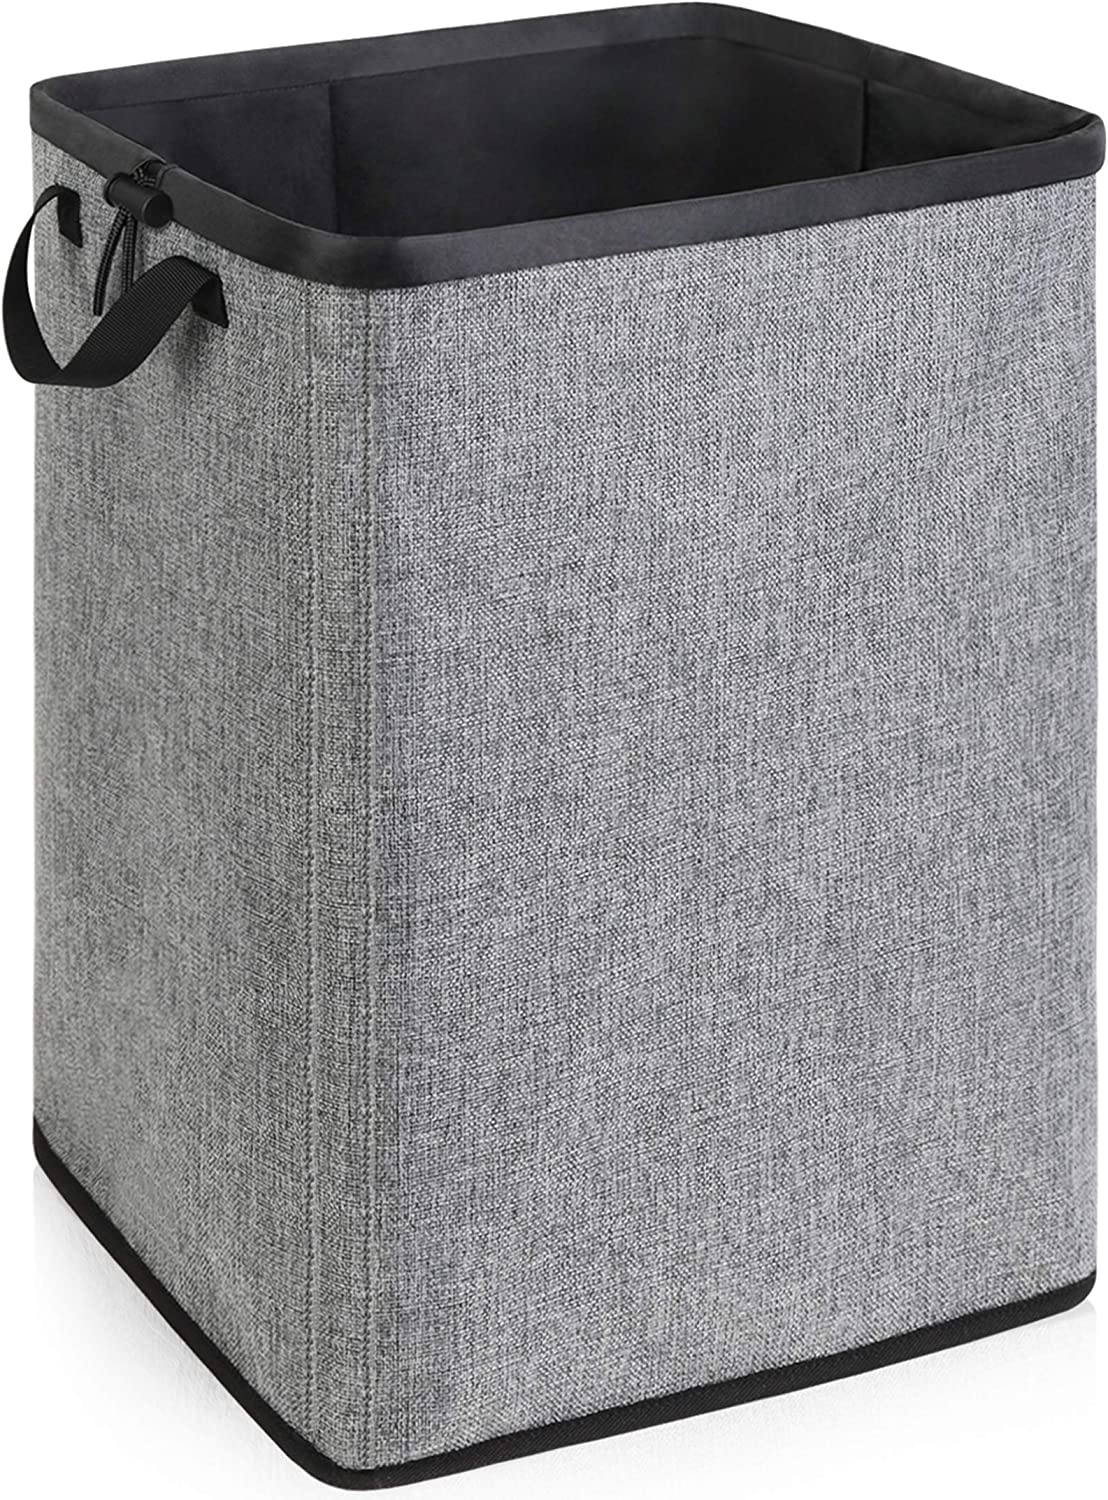 70L Dirty Clothes Hamper with Removable Liner, Laundry Hamper with Handles for Bedroom Closet Storage, Collapsible Bathroom Laundry Basket, Sturdy Laundry Basket for Clothing Organization